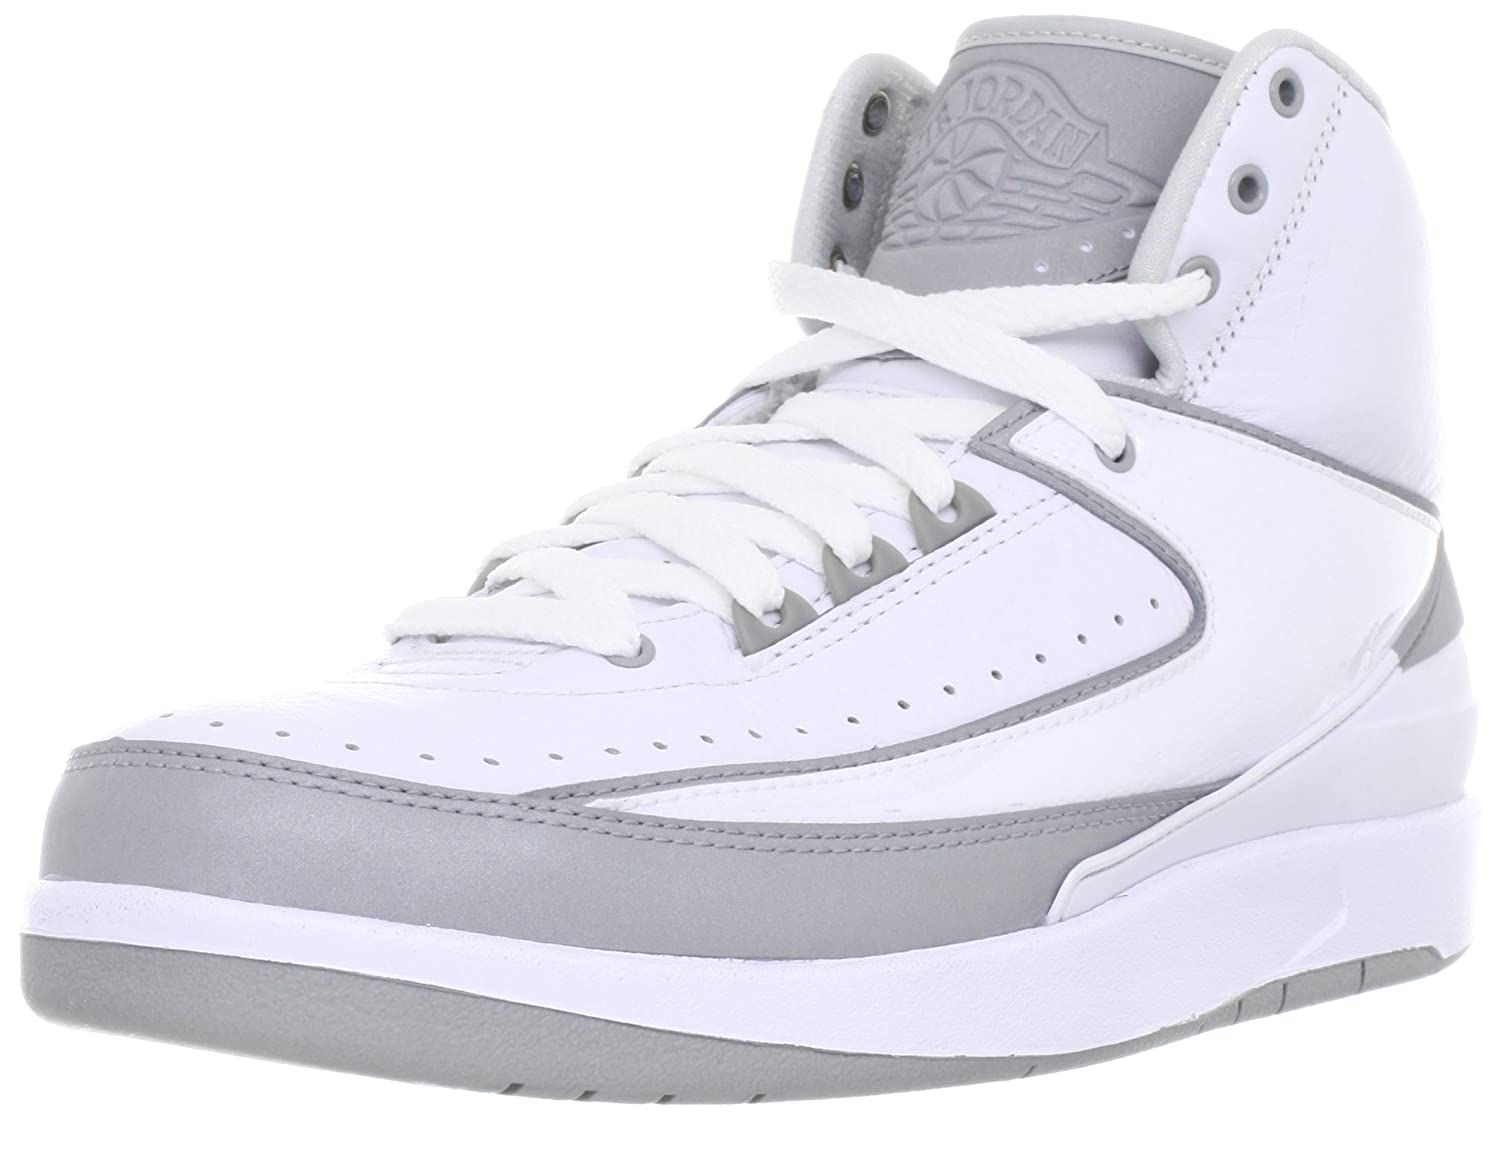 finest selection 1d076 137fc Amazon.com   Jordan Nike Air 2 Retro 25th Anniversary Mens Basketball Shoes  385475-101   Basketball